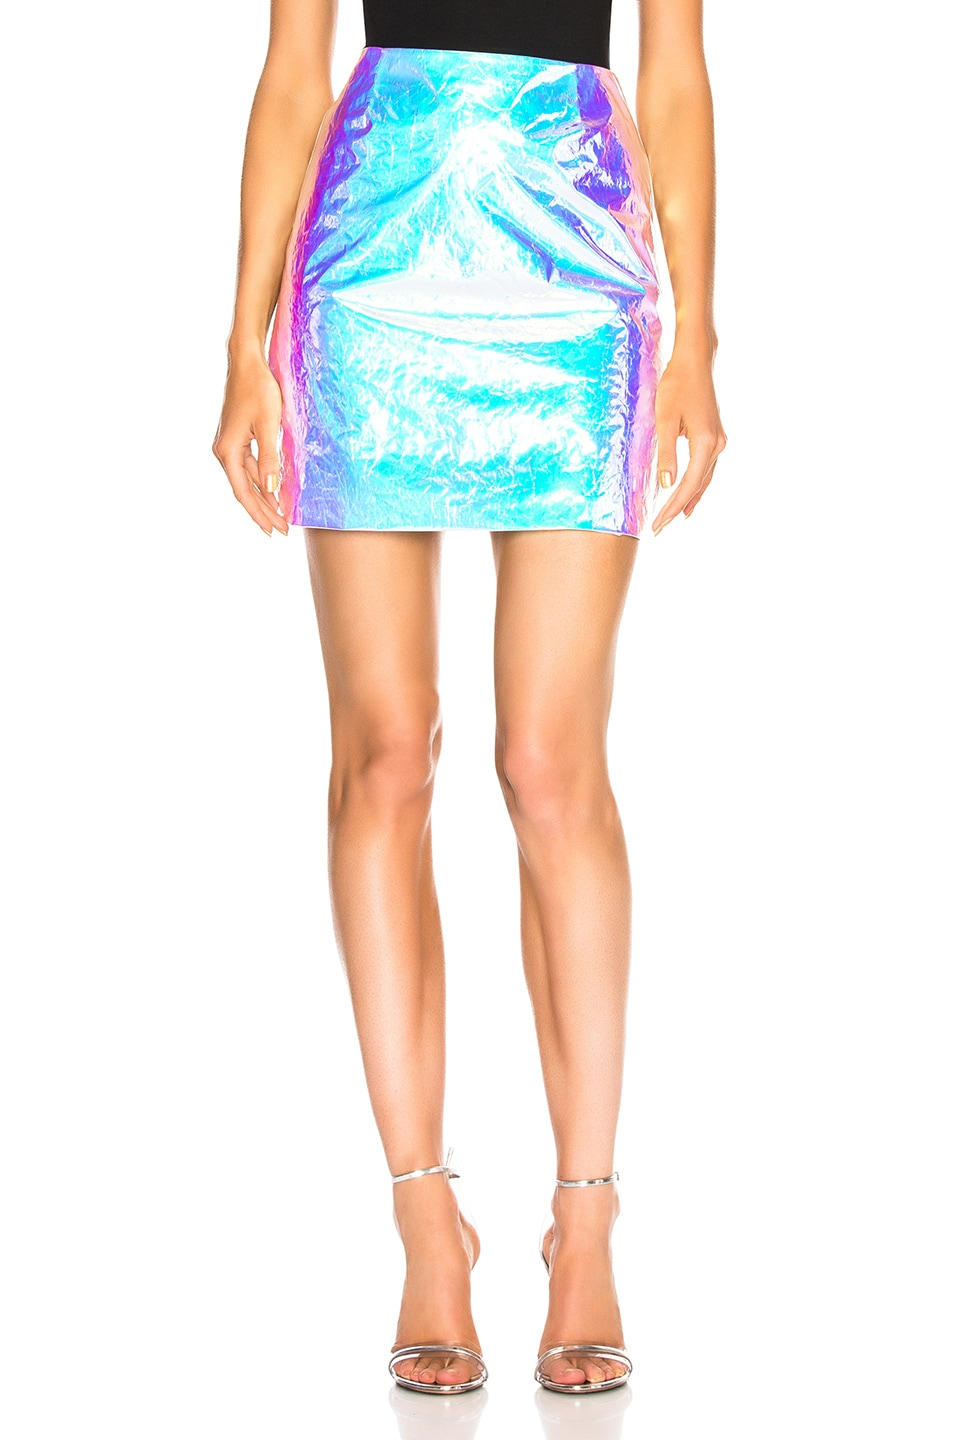 Sies Marjan Desiree Mini Skirt Iridescent 30%OFF